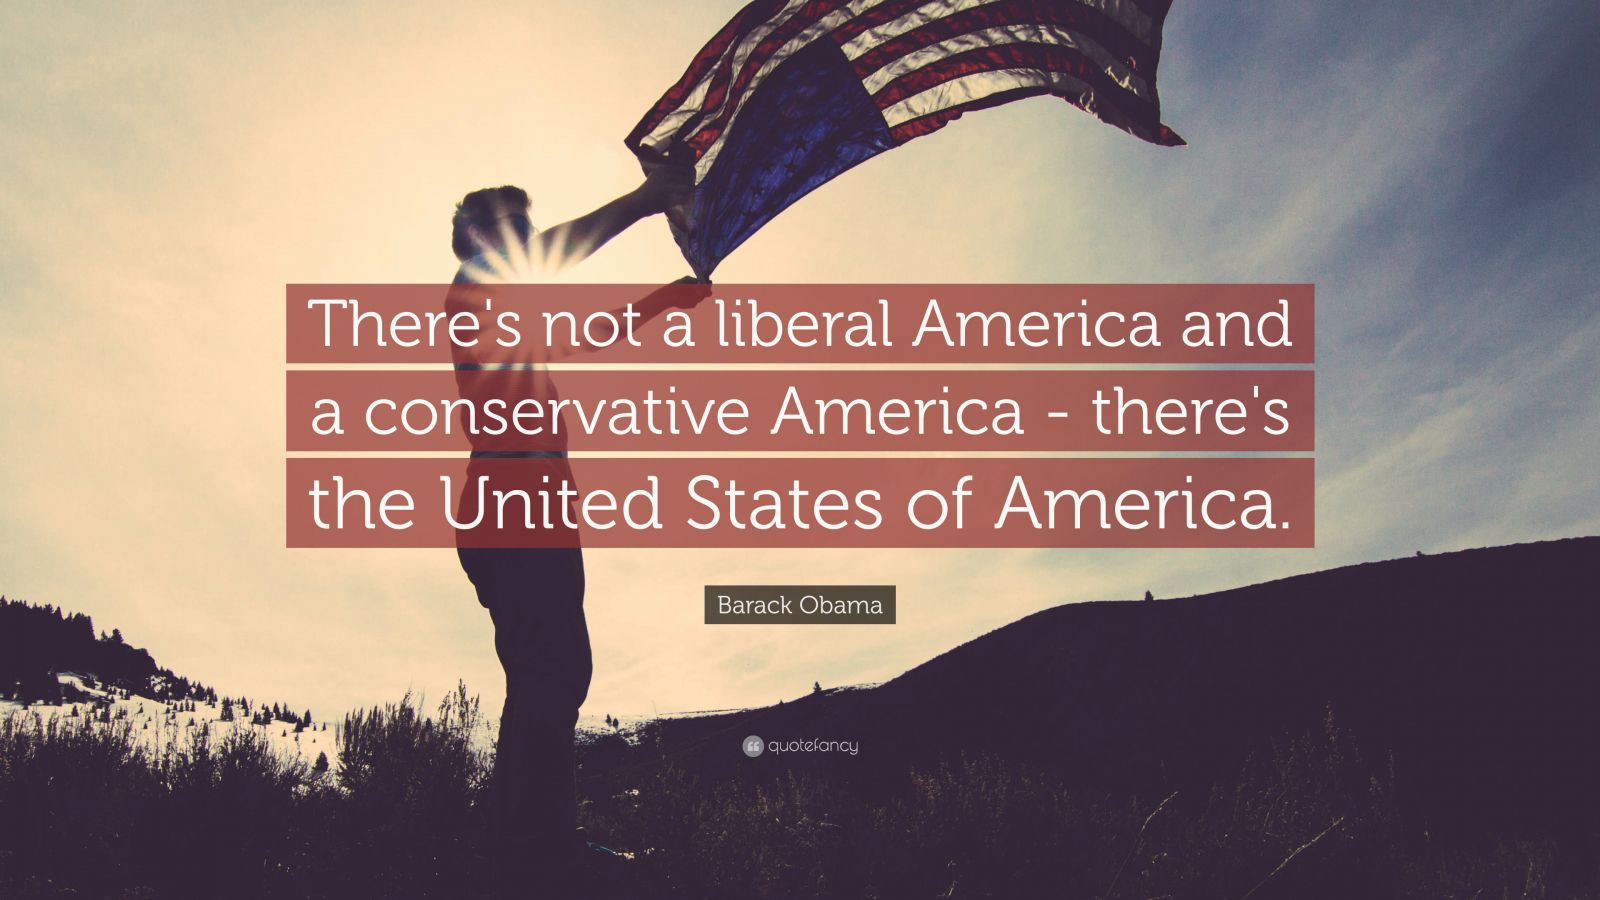 """Barack Obama Quote: """"There's not a liberal America and a conservative America - there's the United States of America."""""""